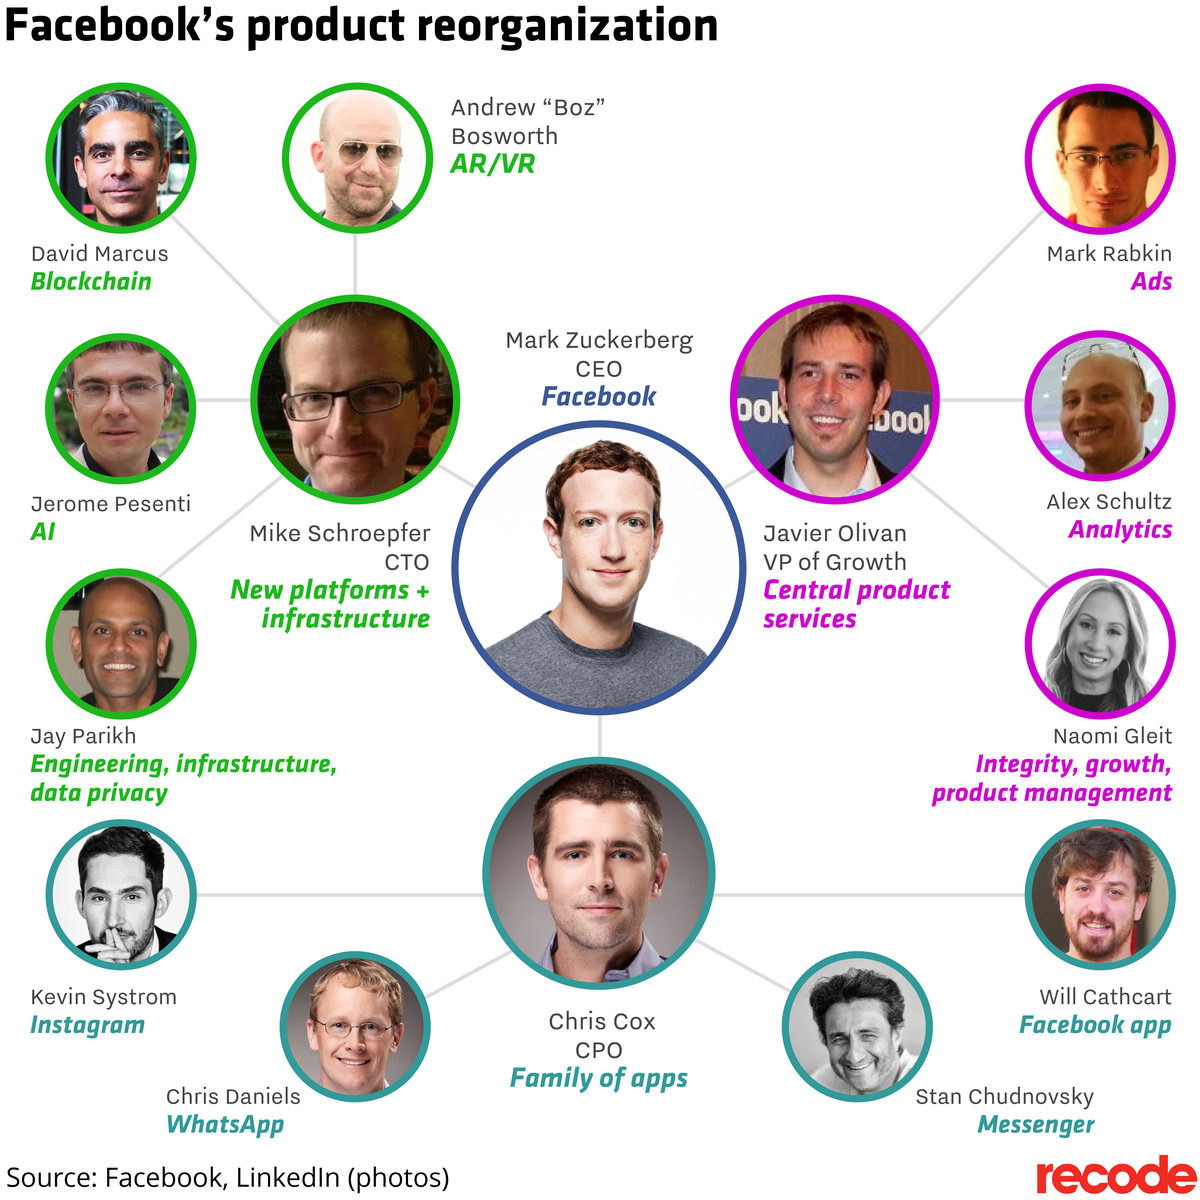 Facebook product reorganization